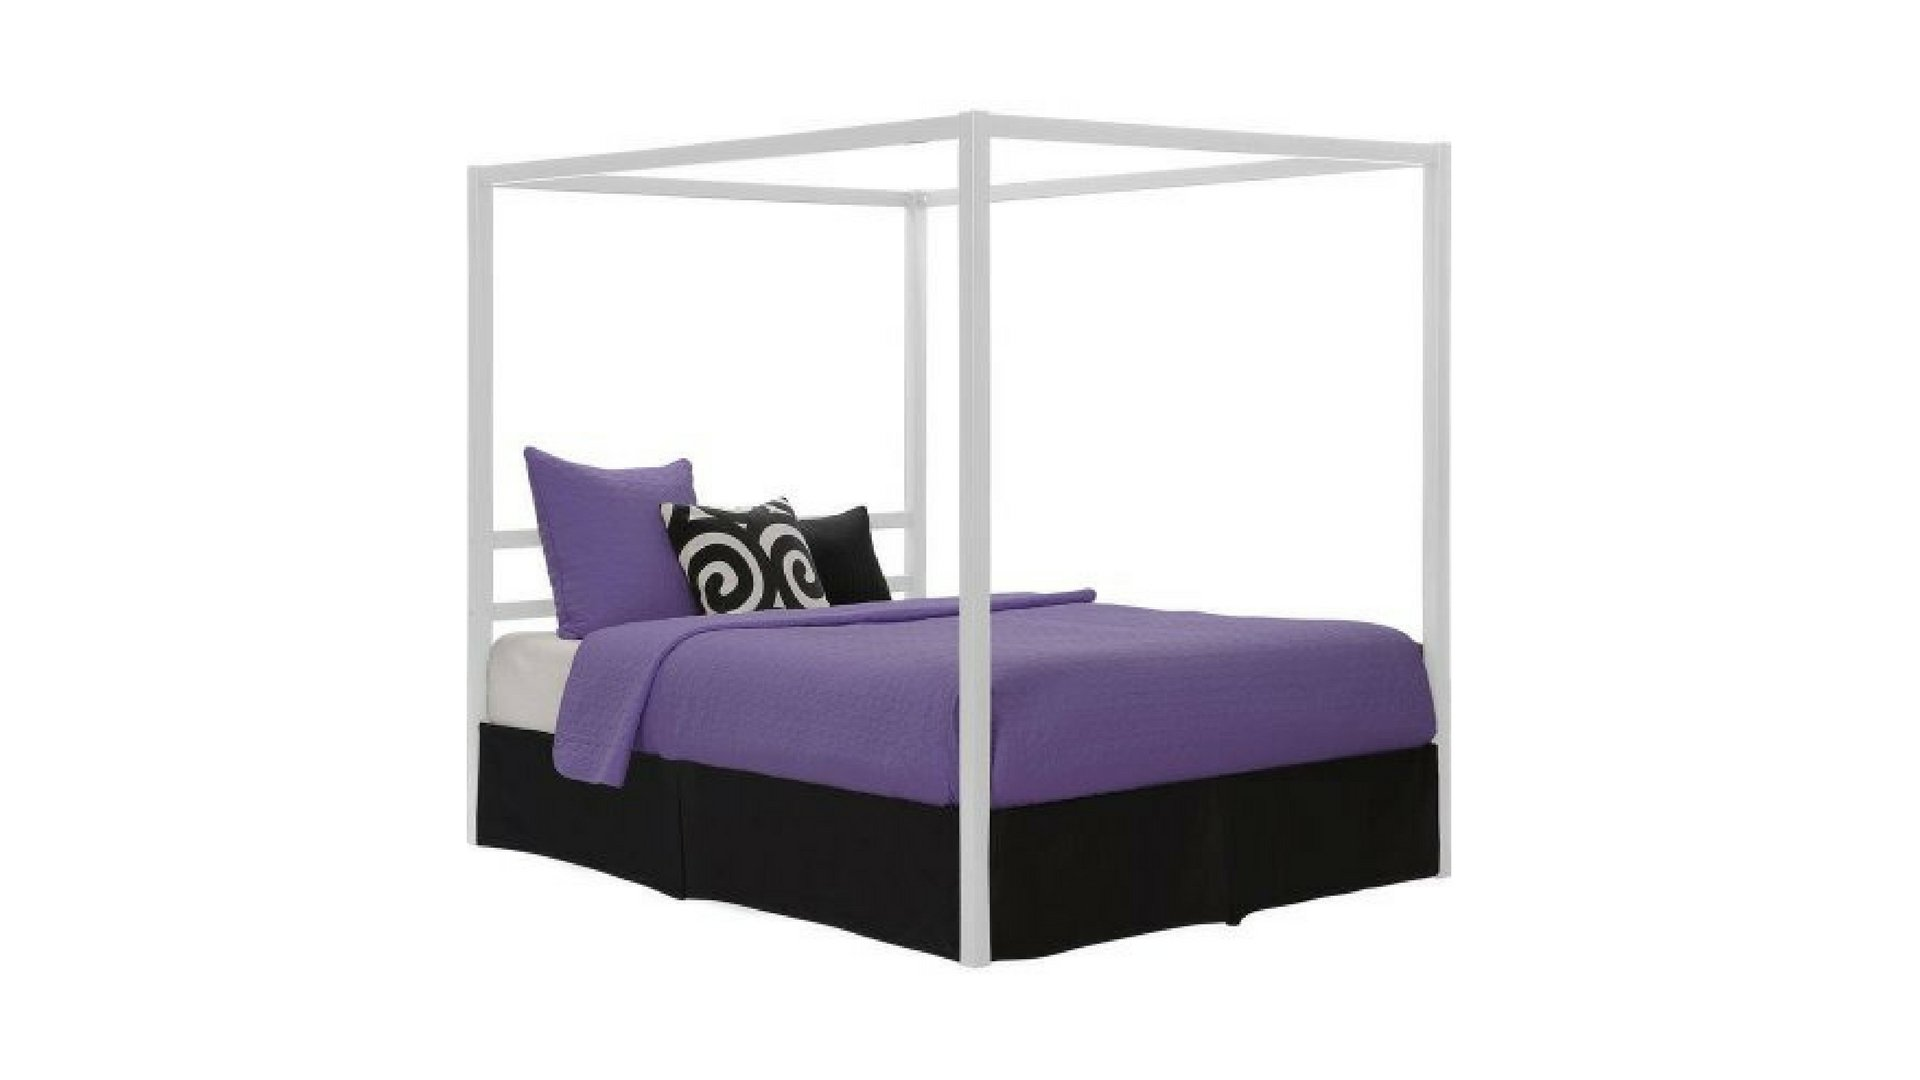 Canopy Bed, White Queen Size Metal Bed Modern Design with Built-in Headboard by DHP* (Image #1)